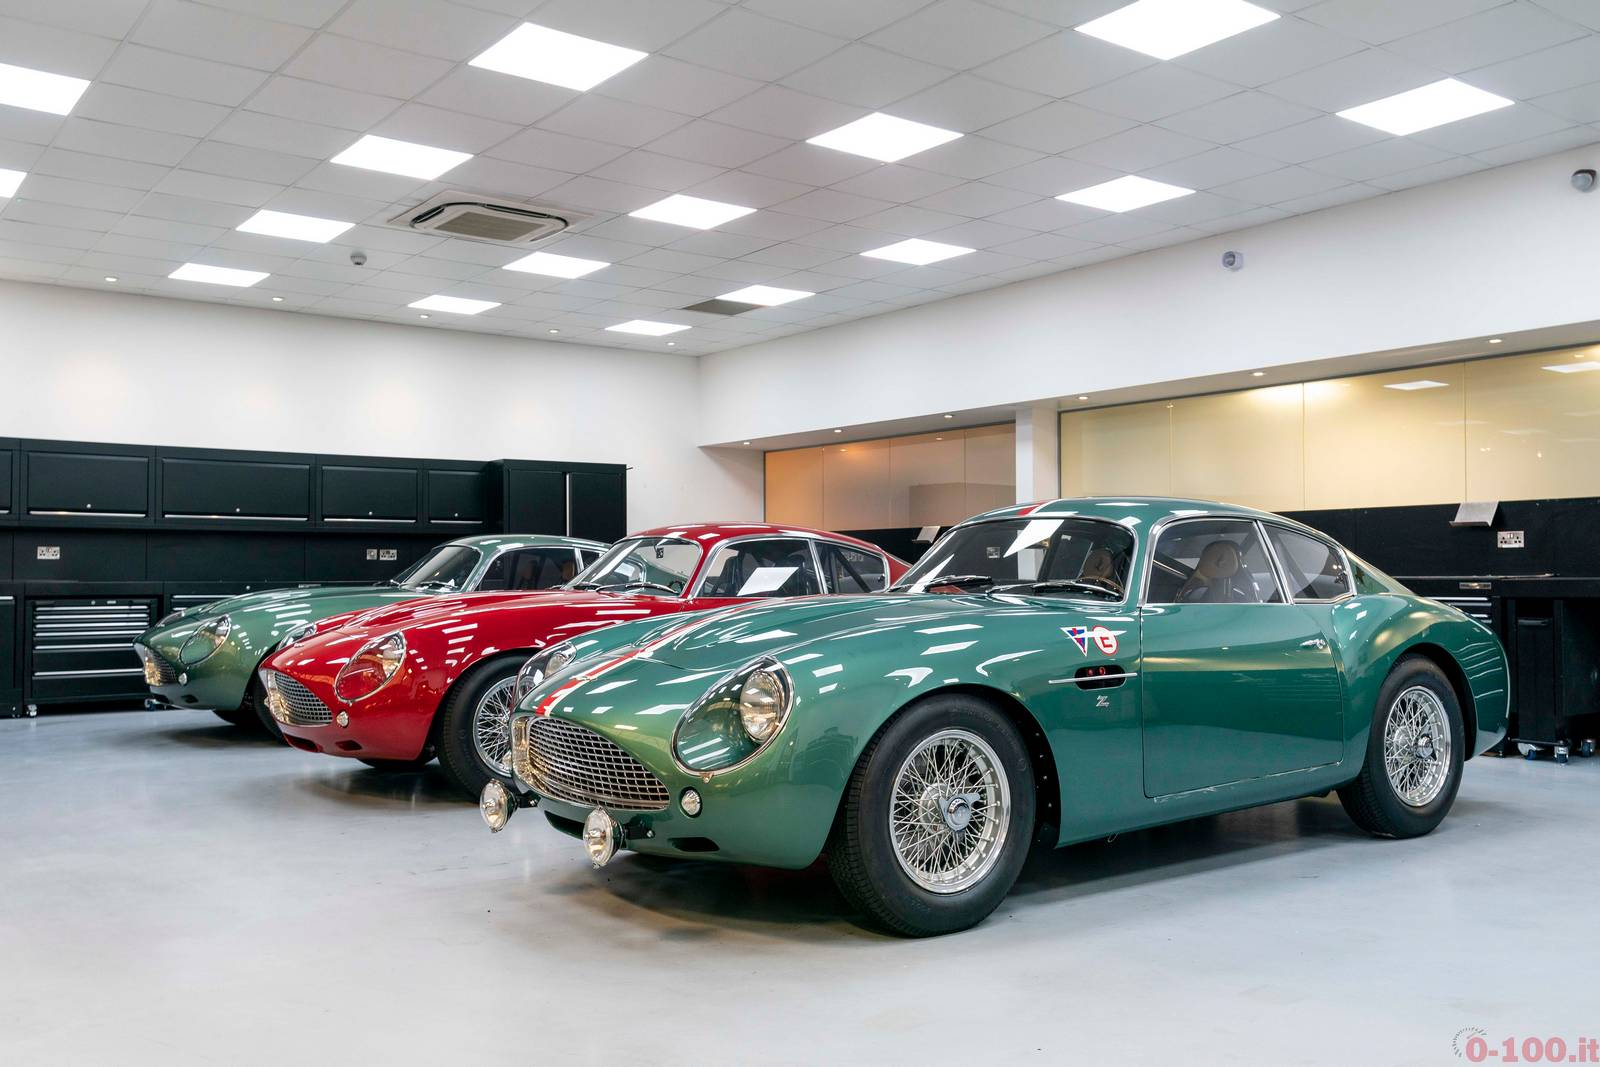 martin_db4_gtz_sanction_3_zagato_centenary_collection_0-100_17